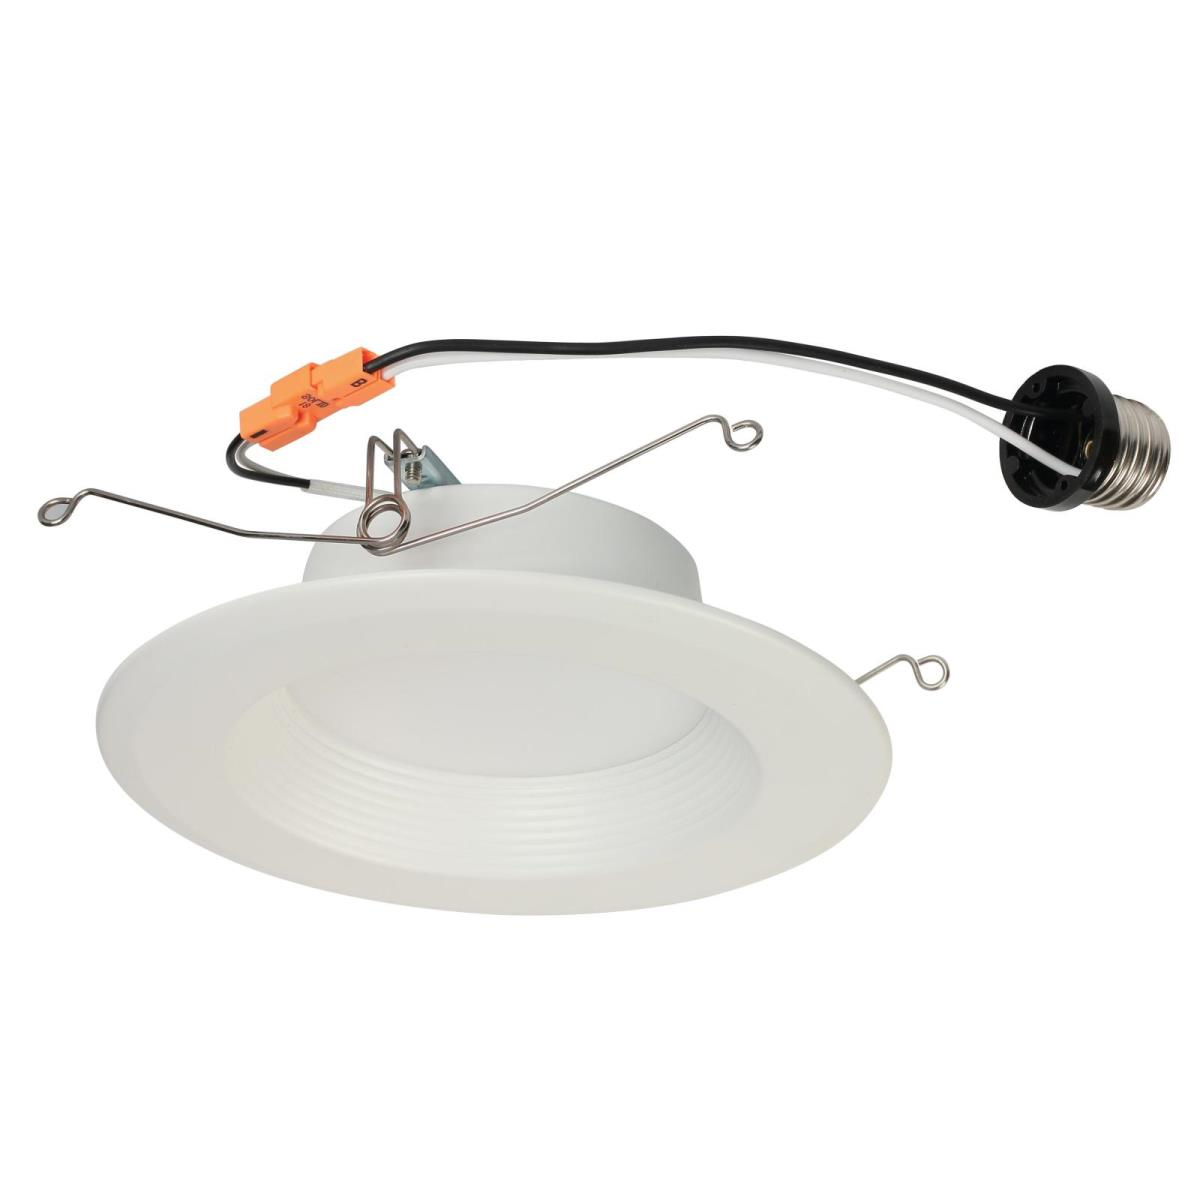 "11W Recessed LED Downlight 5-6"" Dimmable 4000K E26 (Medium) Base, 120 Volt, Box"